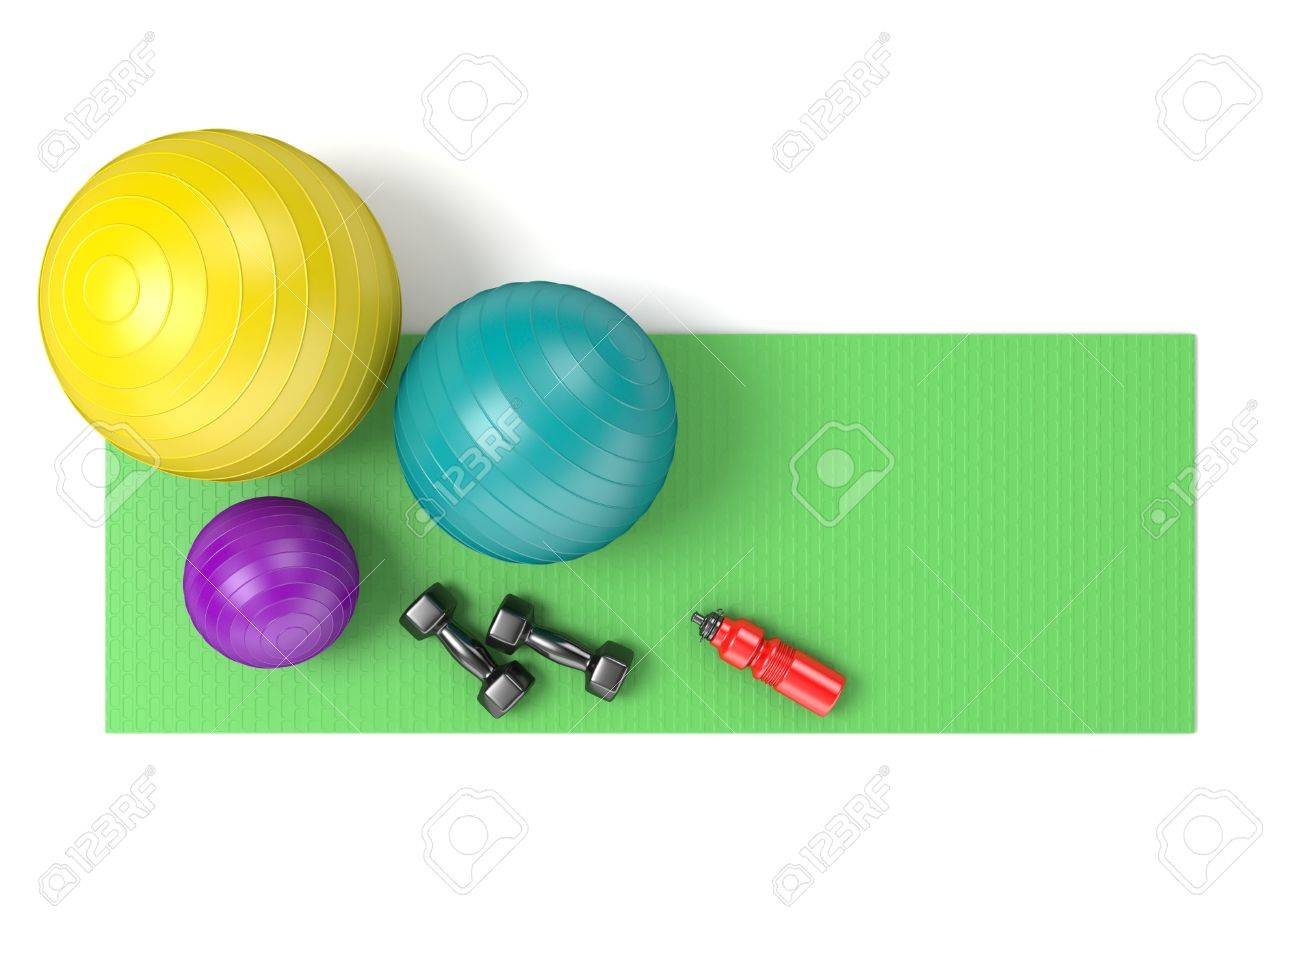 Fitness Ball Dumbbells And Plastic Water Bottle On Green Yoga Mat Top View